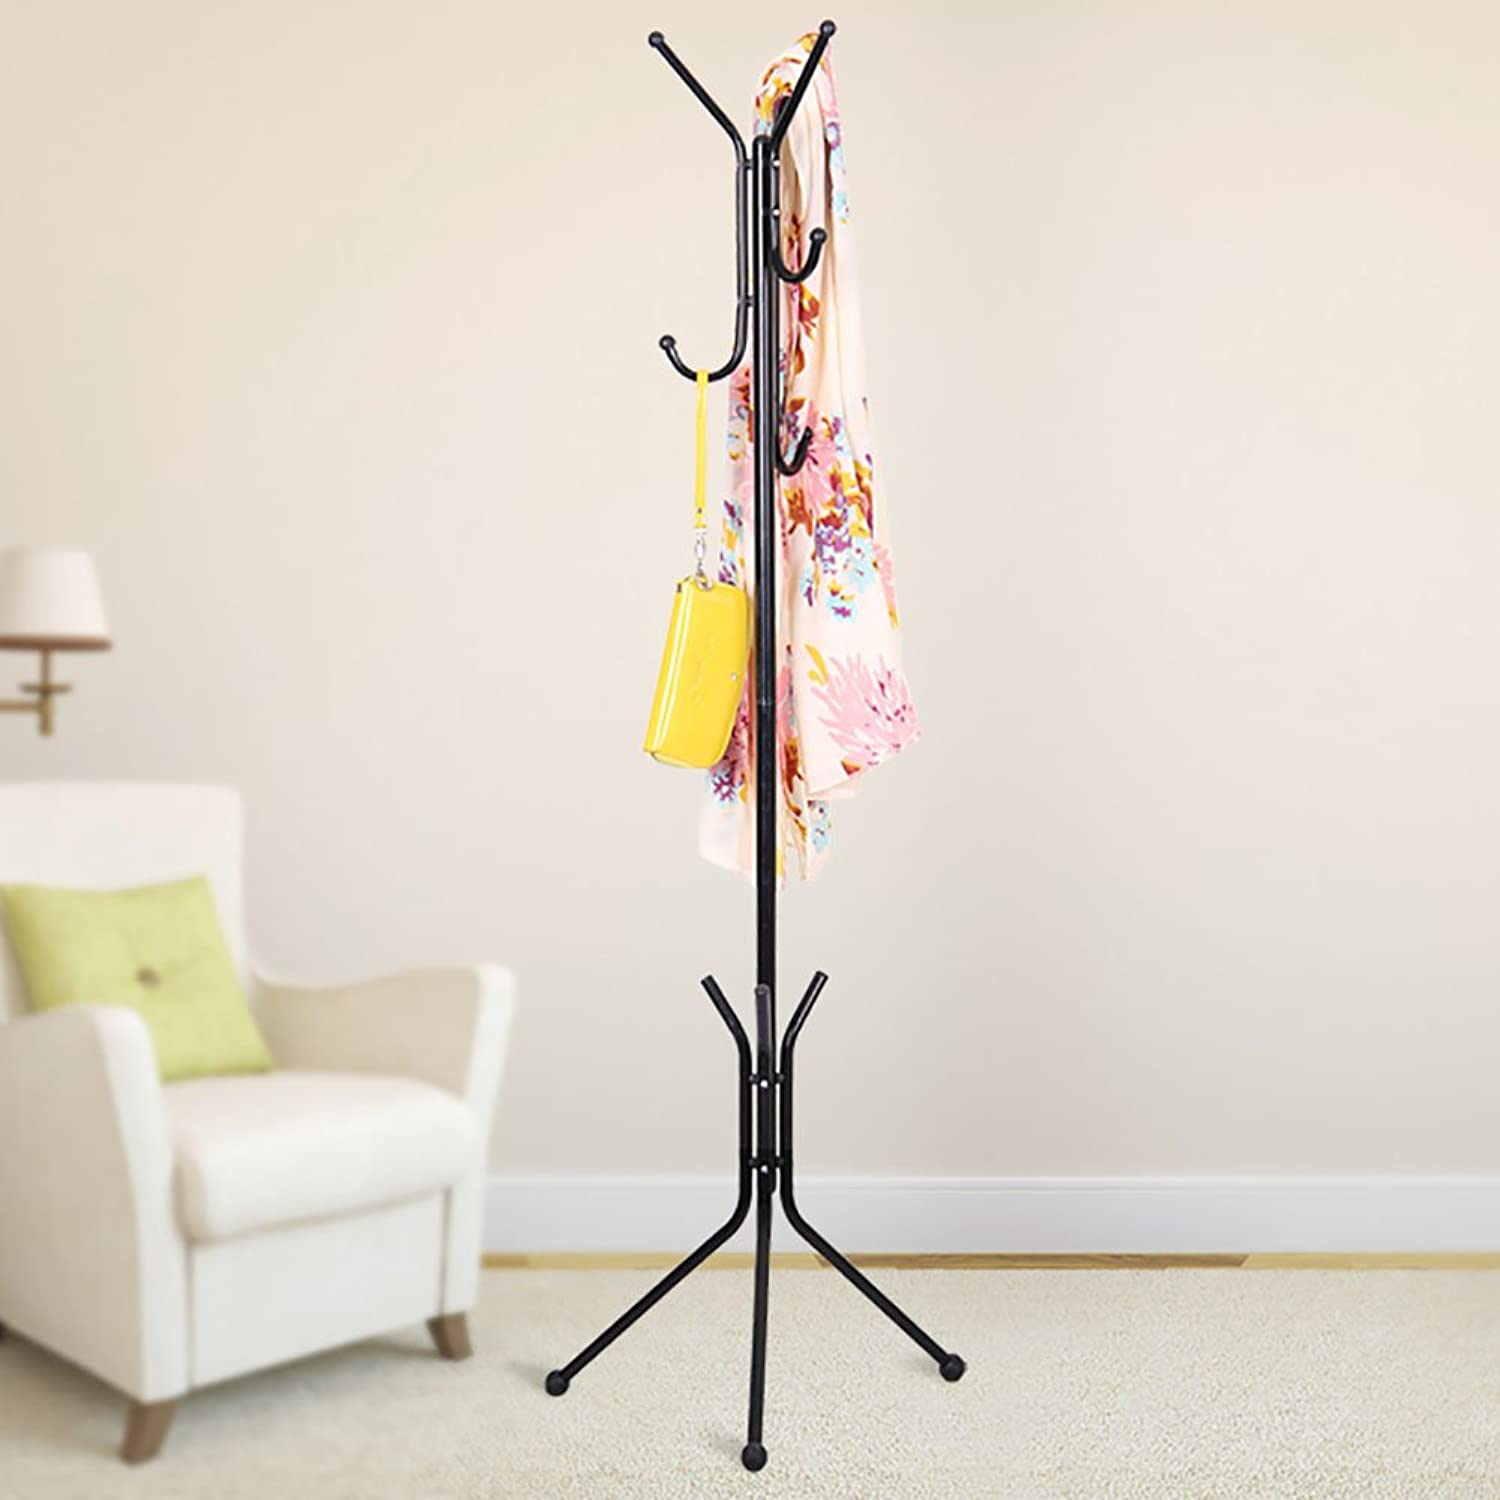 LFF- Wrought Iron Metal Bedroom Hanger Living Room Floor Fashion Creative Hanger Floor-Standing Coat Rack Hat Rack (color   Black)